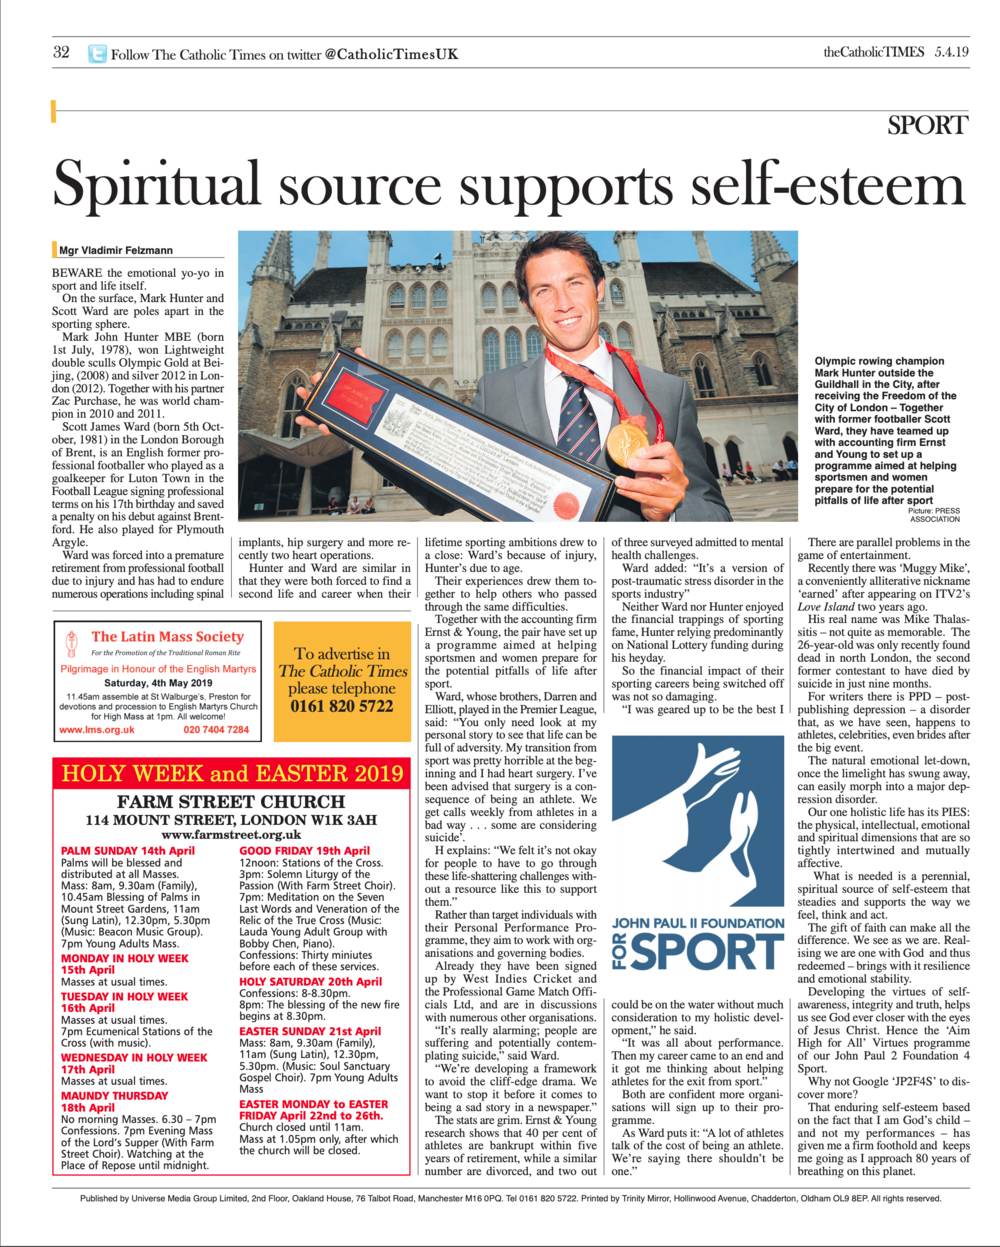 First published in theCatholicTimes 05/04/2019